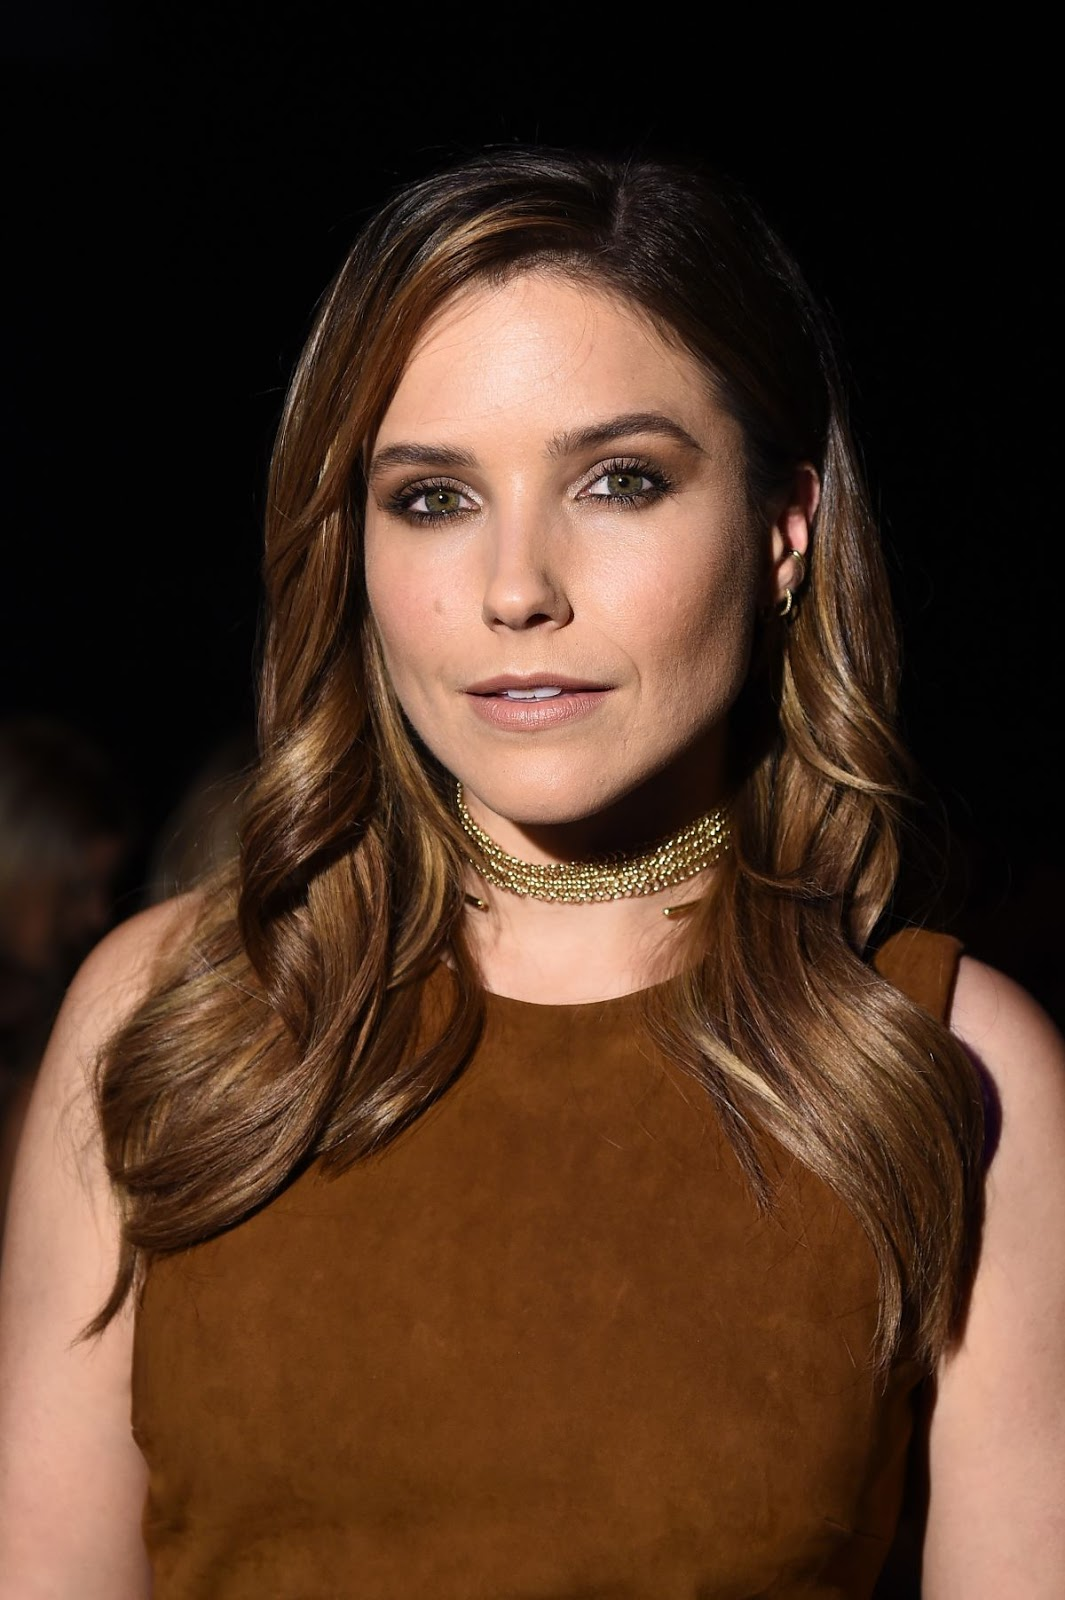 HQ Photos of 'Chicago Med' actress Sophia Bush At Cushnie Et Ochs Fashion Show At New York Fashion Week